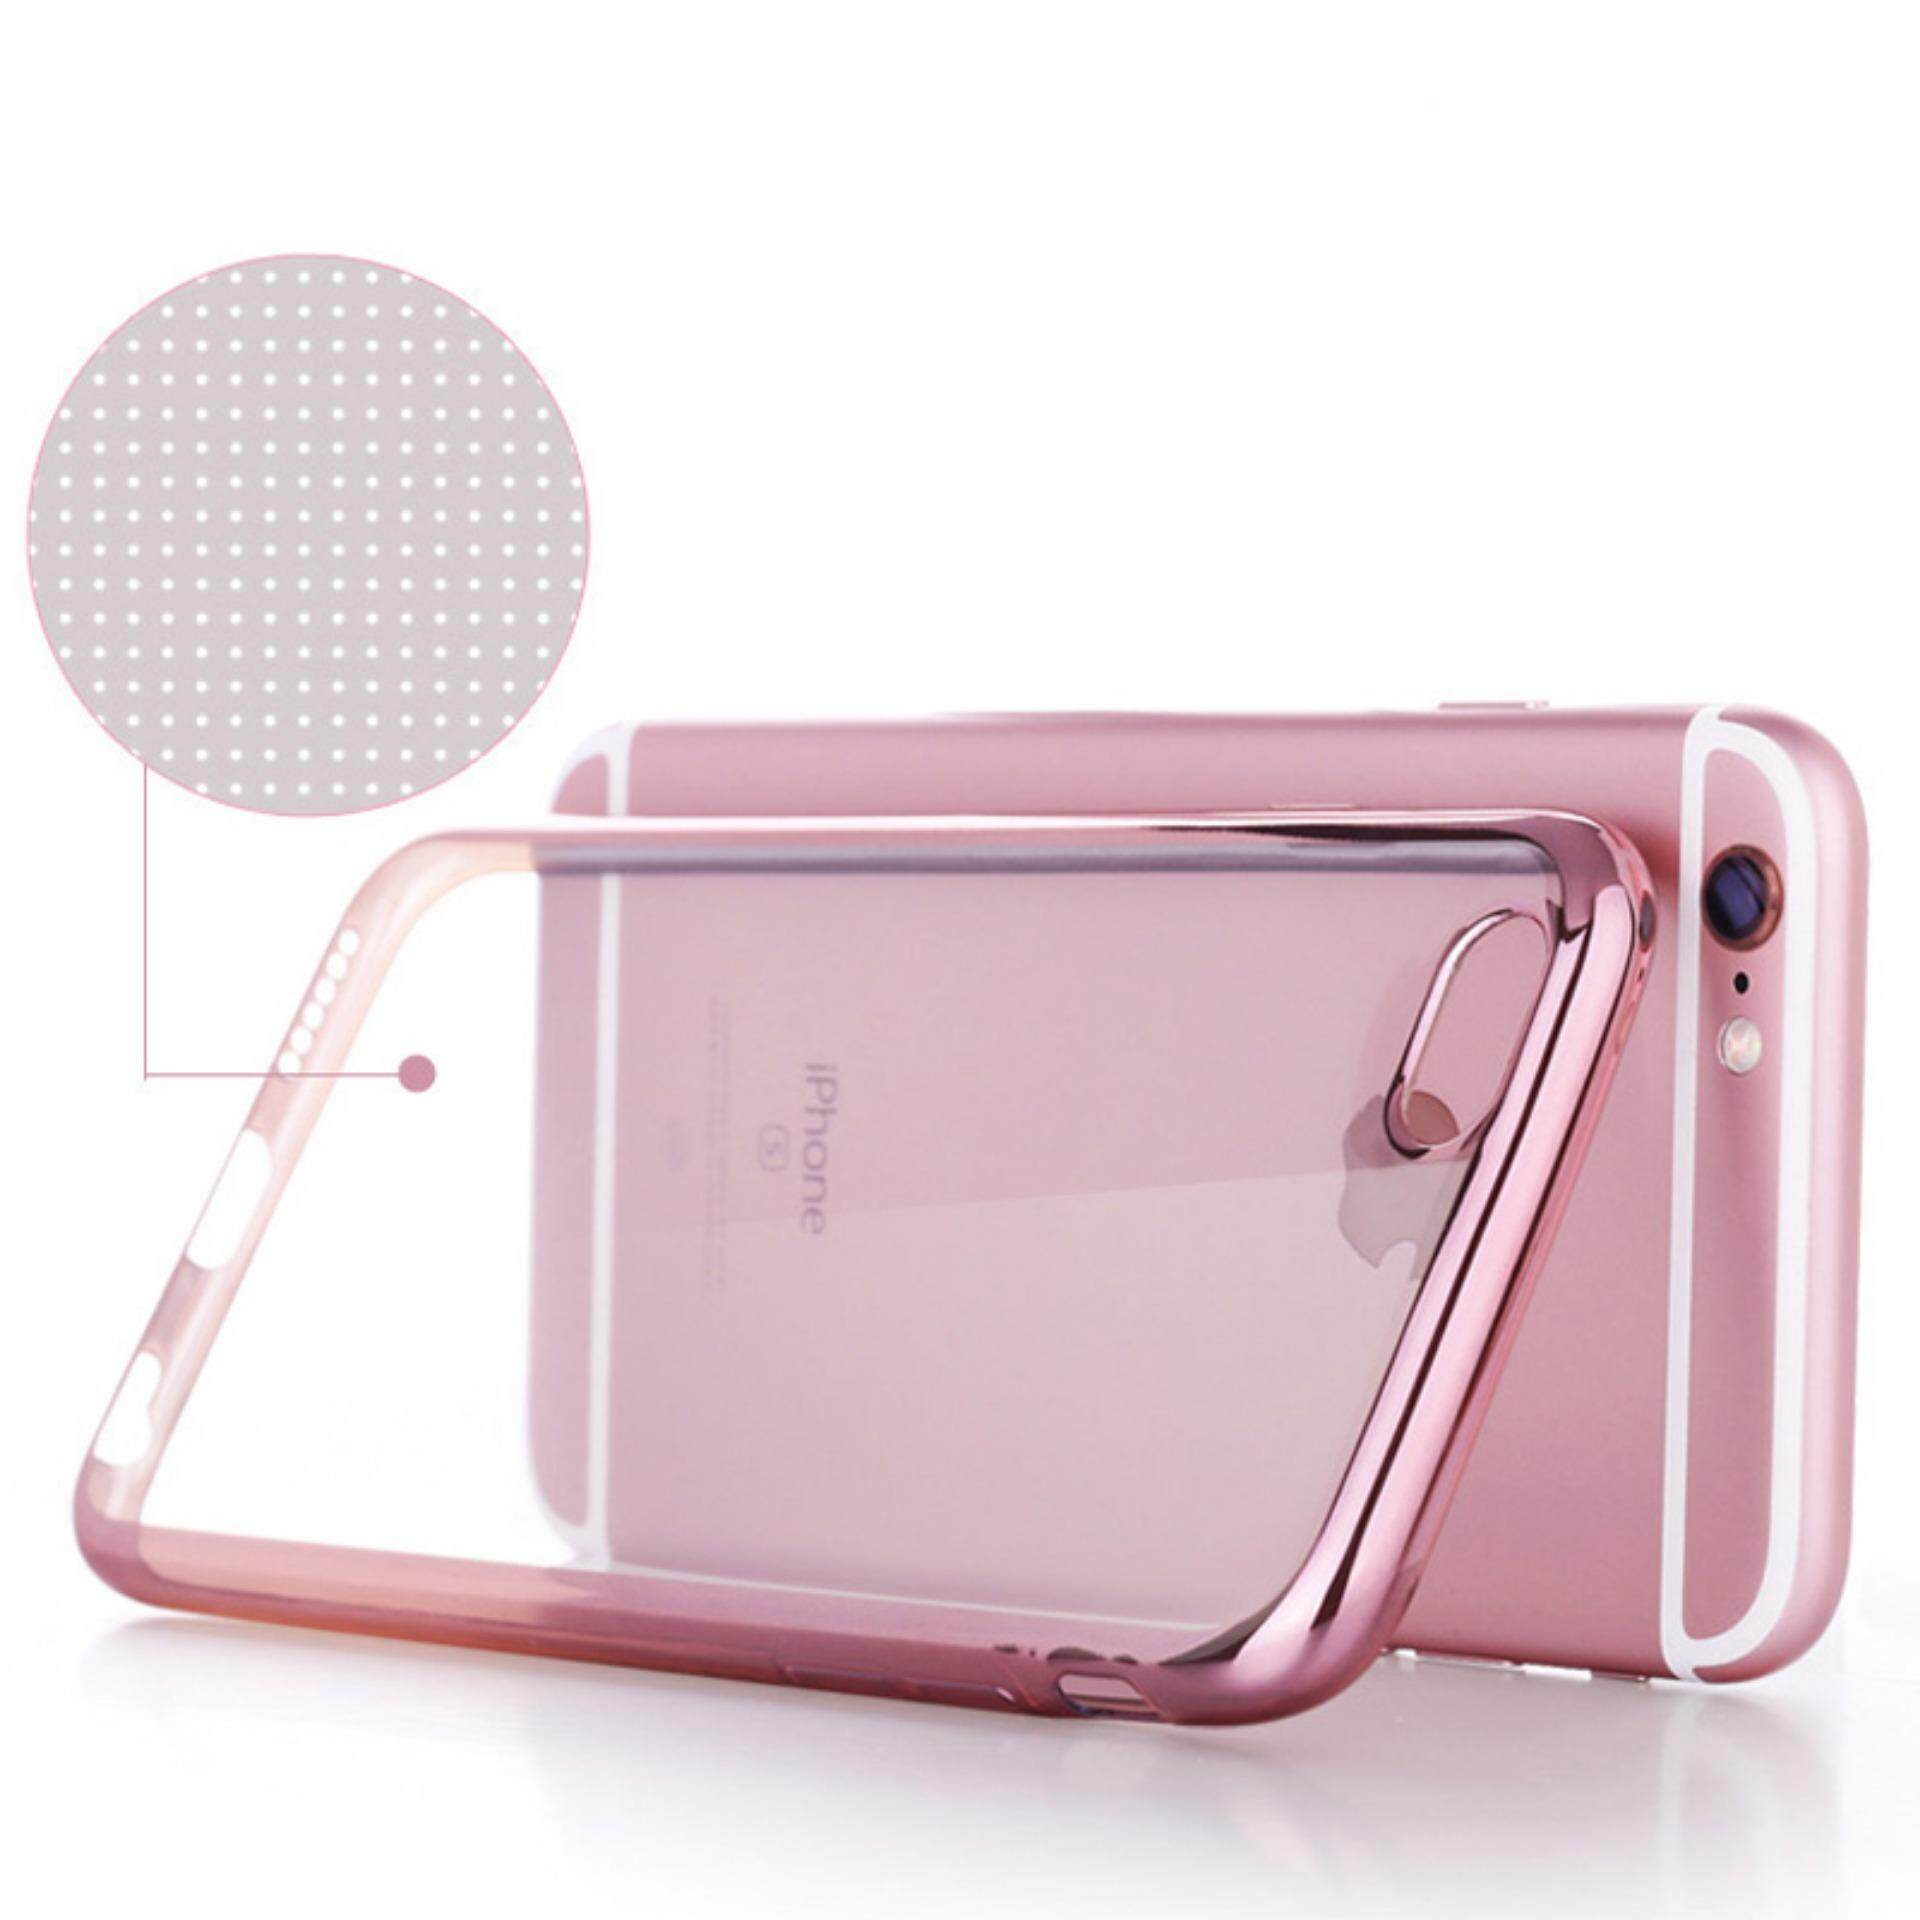 ViLi Apple iPhone 6 6s TPU Silicone Ultrathin Luxury Slim Electroplating Crystal Clear Transparent Soft Back Cover Case Covers (Pink Rose Gold) FREE 2 Screen Protector